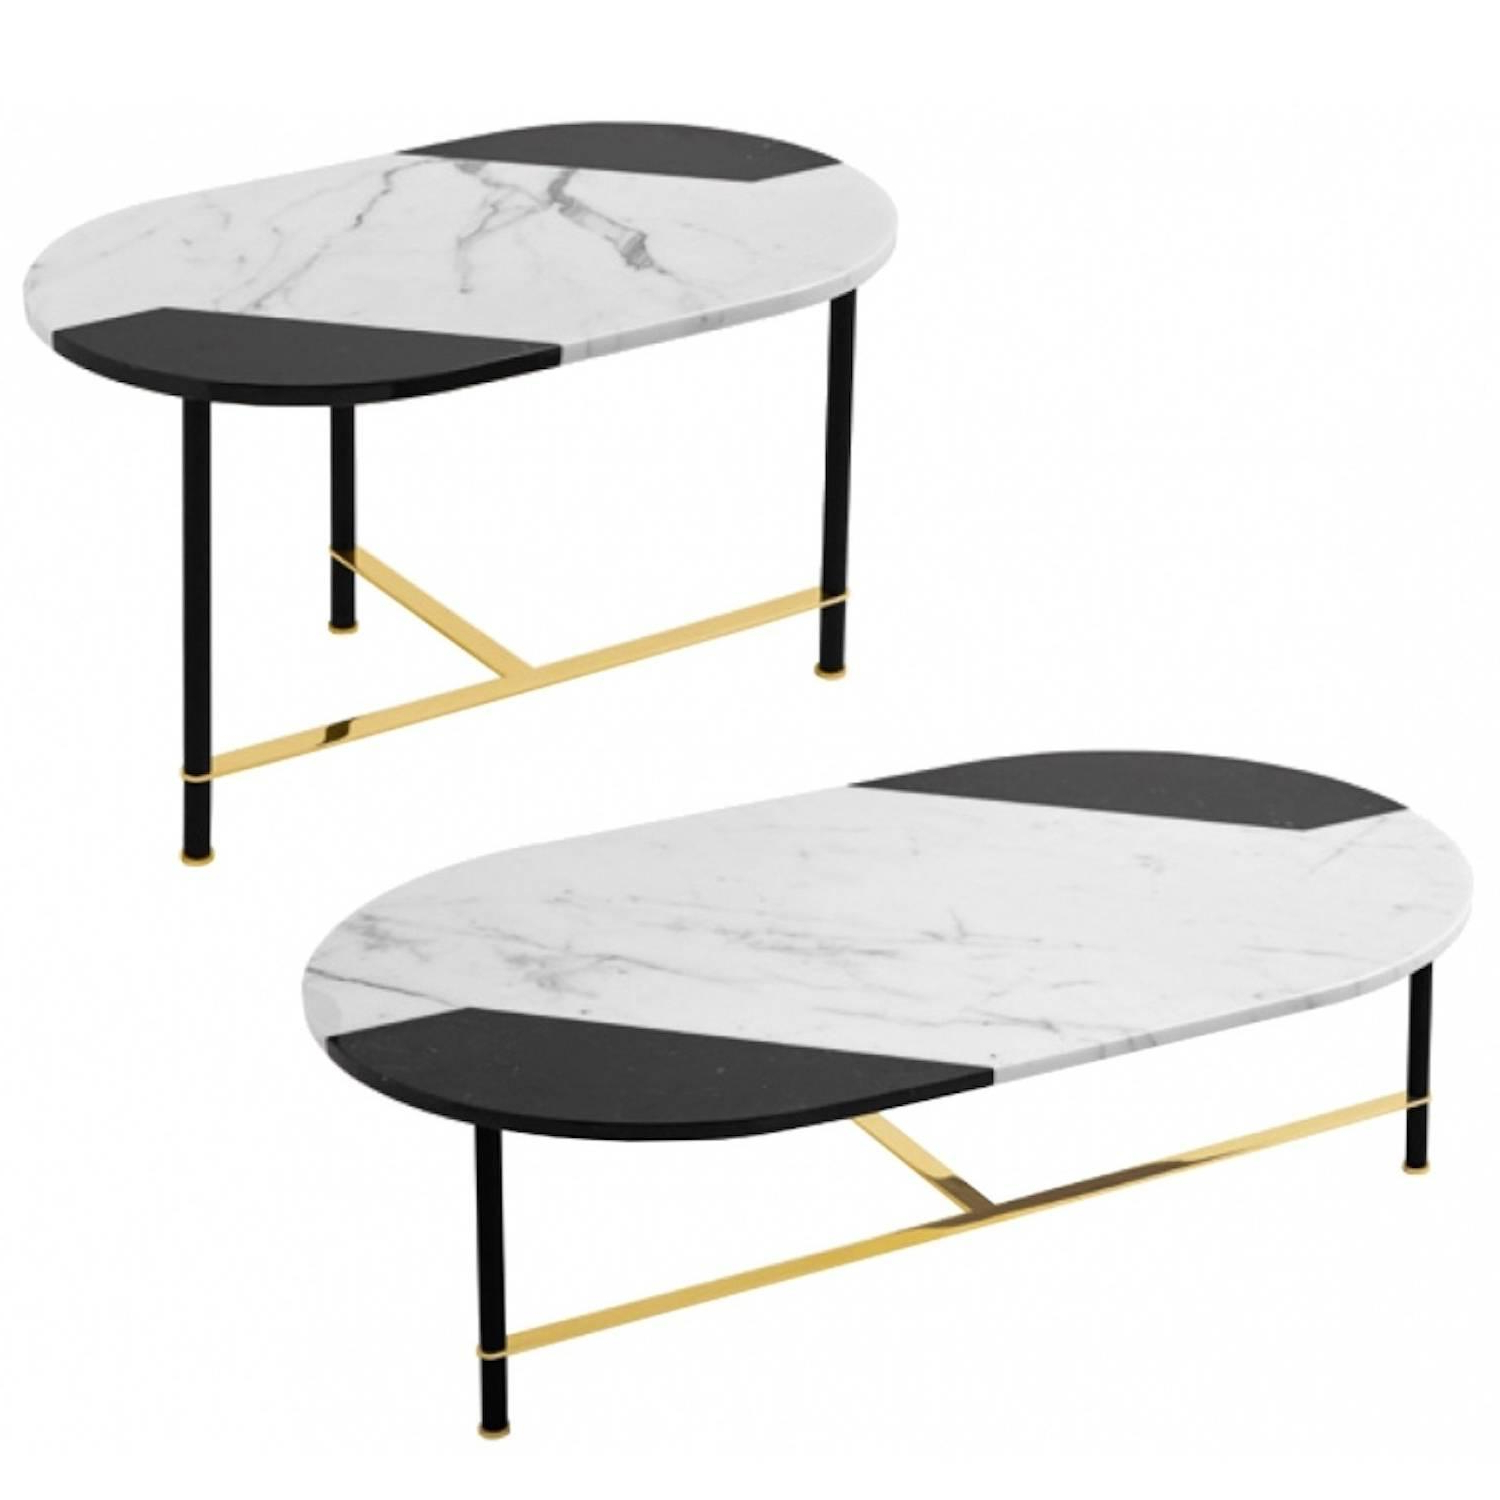 Smart Round Marble Brass Coffee Tables With Regard To 2019 Coffee Table Or Side Table In Black And White Inlaid Marble Top With (Gallery 20 of 20)